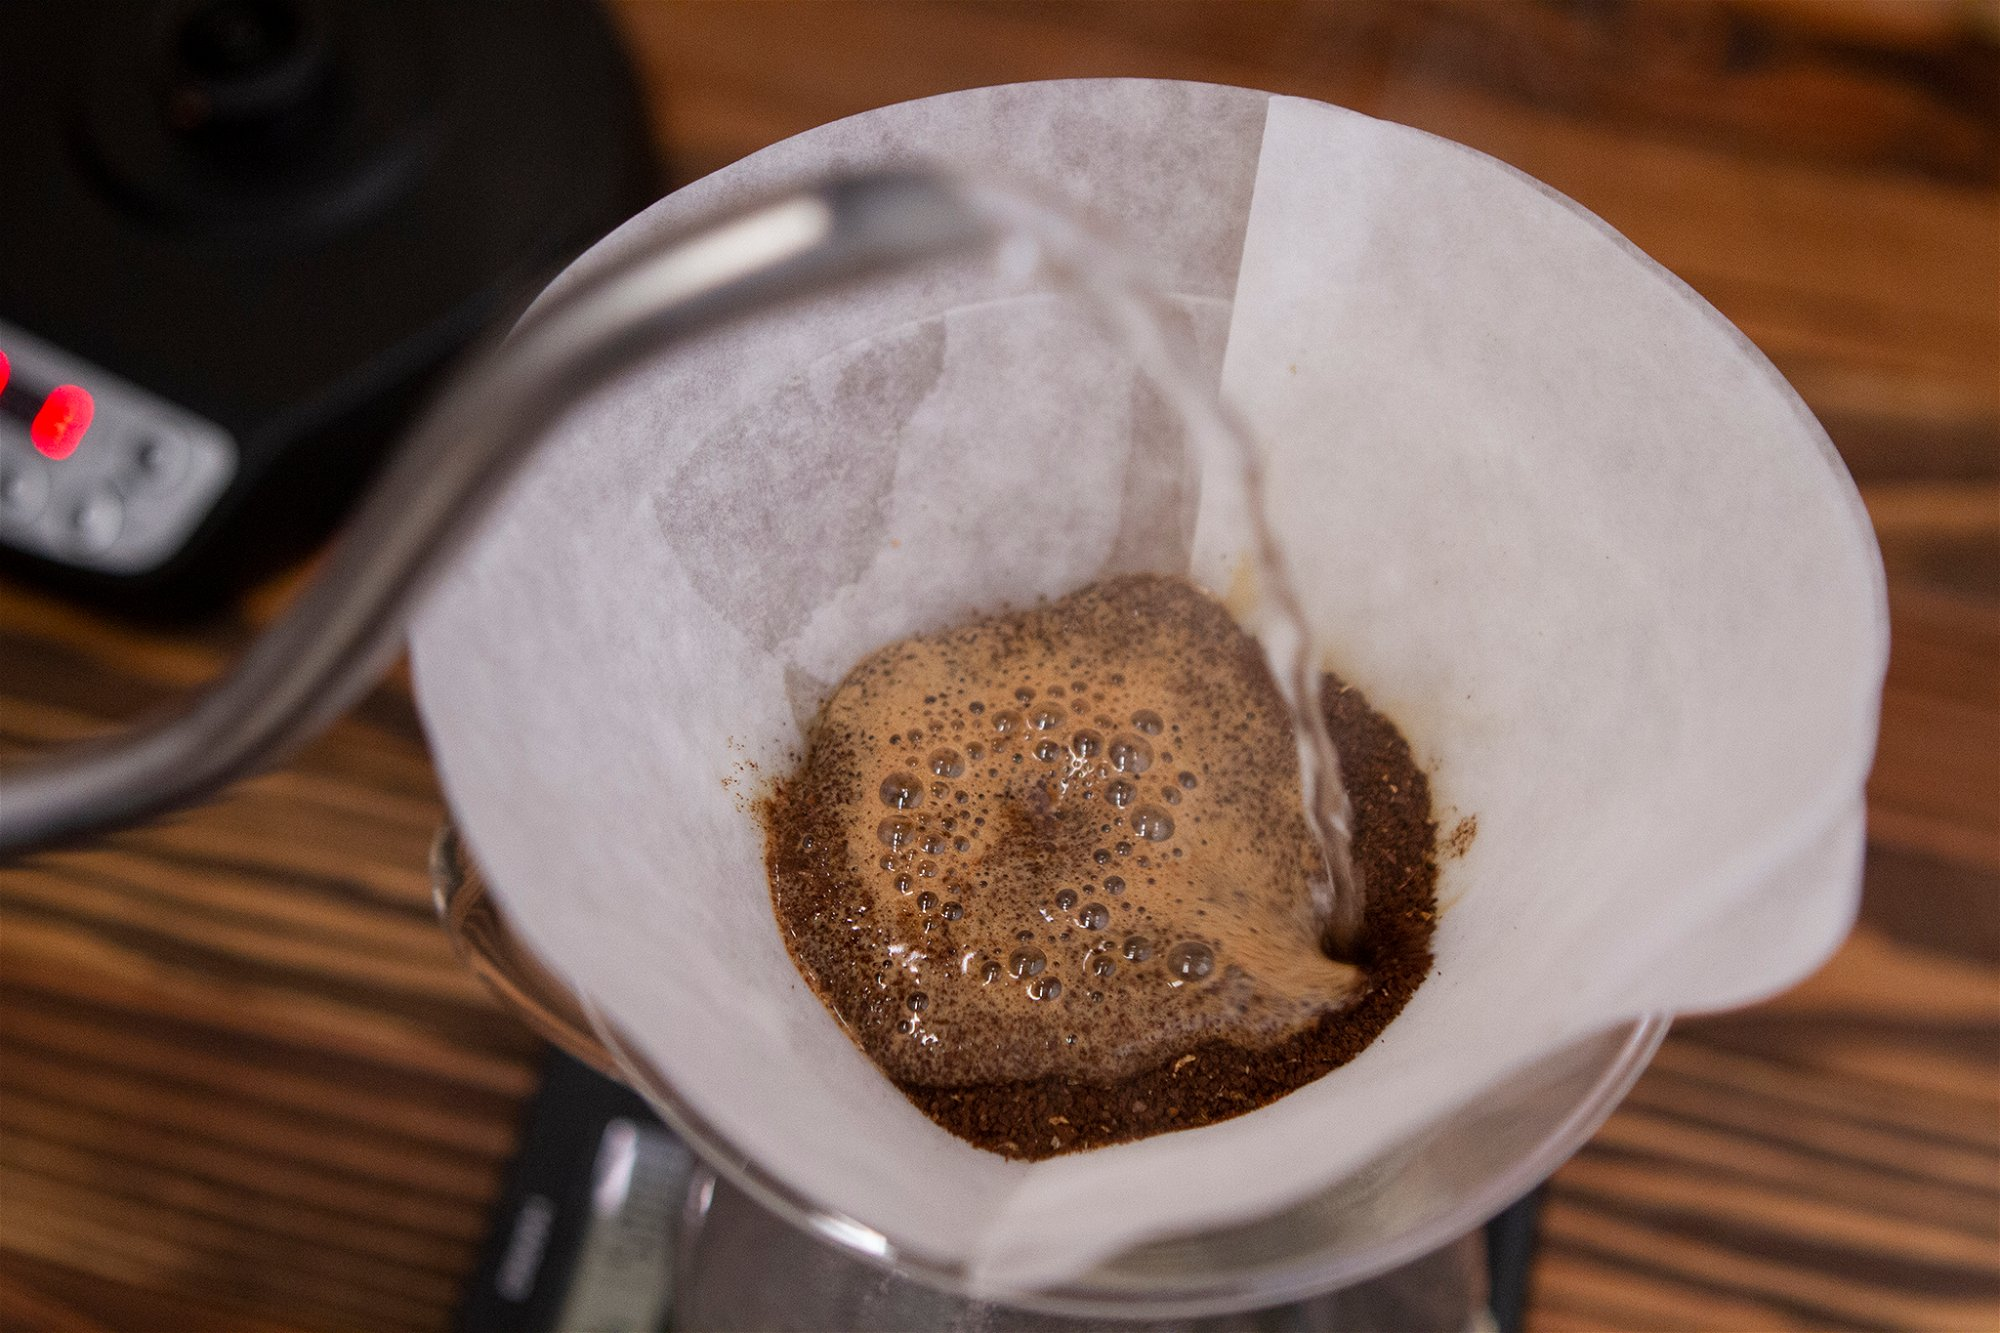 POURING WATER ON TO COFFEE GROUNDS IN CHEMEX